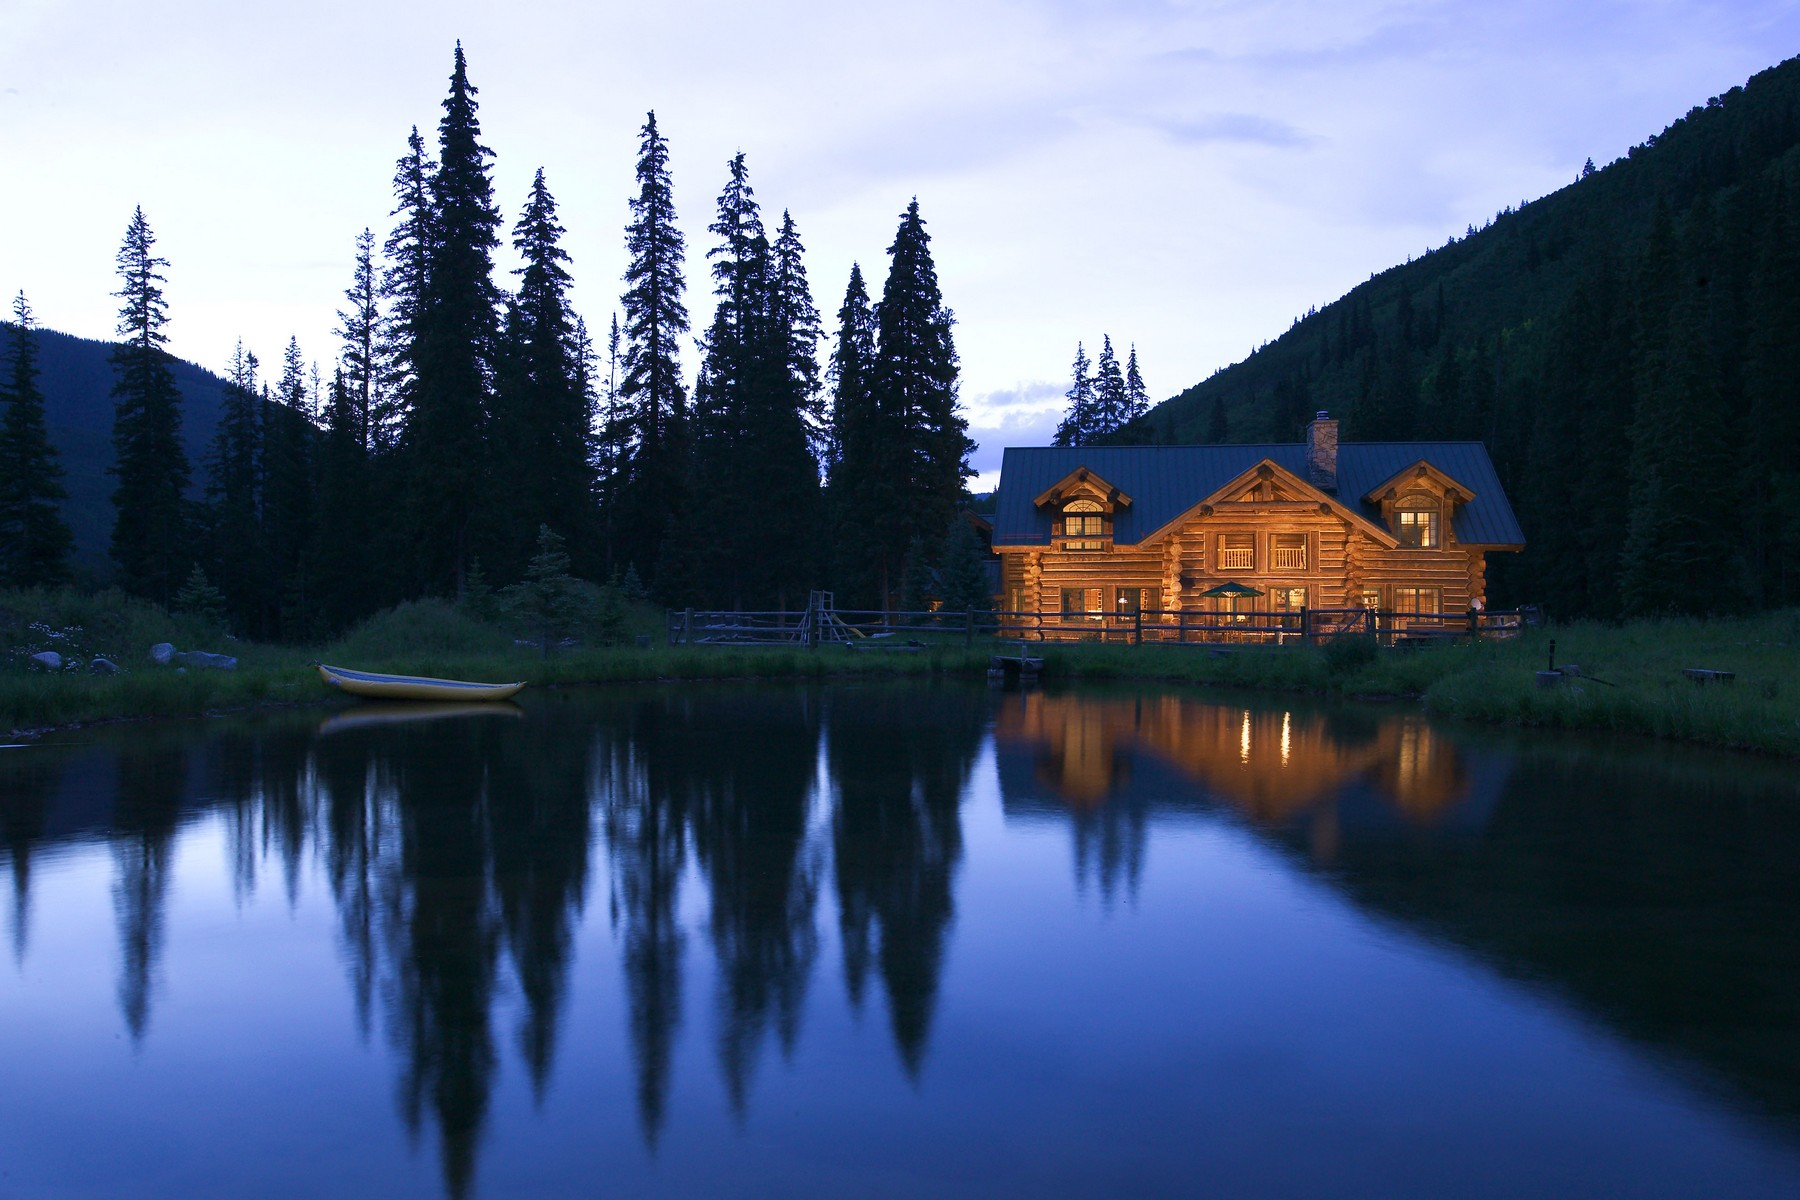 Single Family Home for Sale at Star Peak Lodge 13500 Castle Creek Road Aspen, Colorado 81611 United States